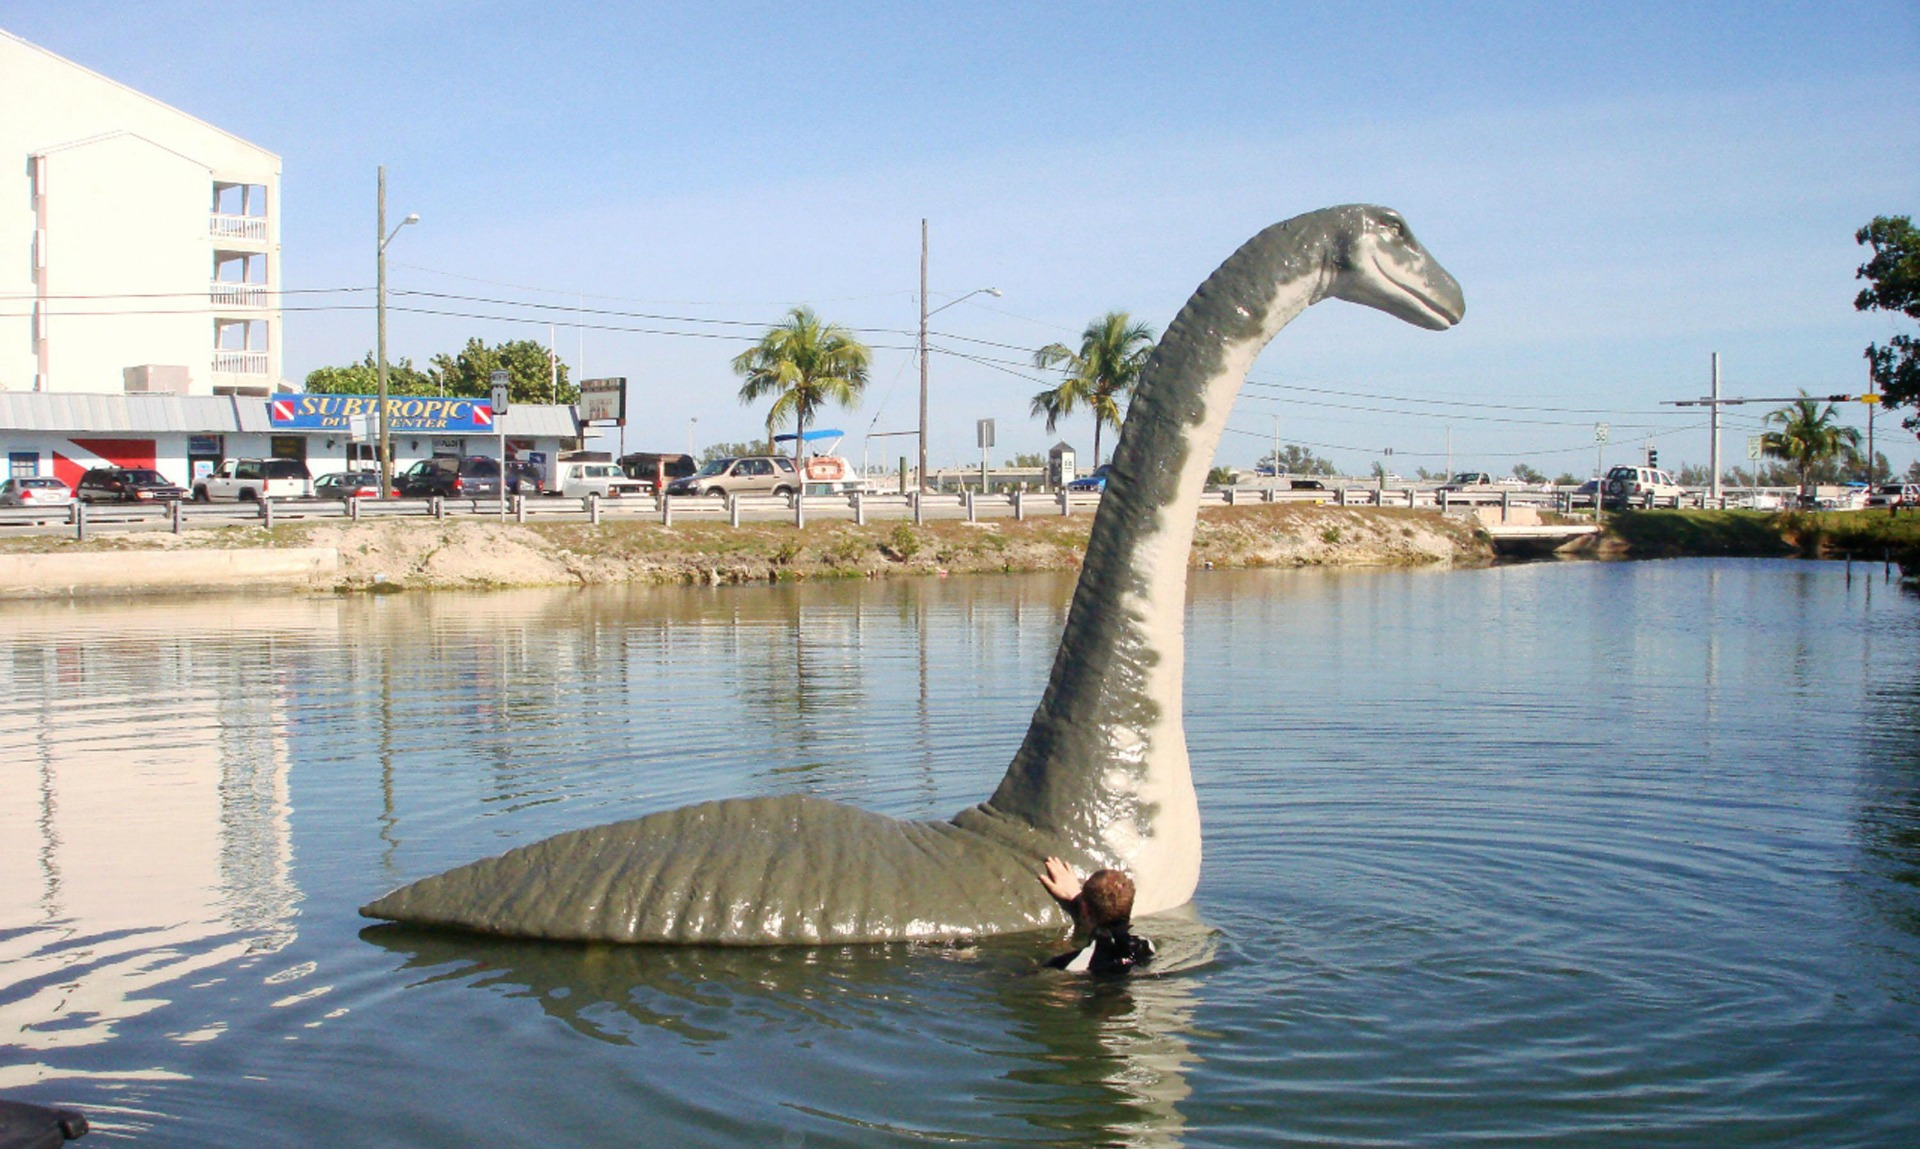 Loch Ness Monster sculpture in Florida, 2008